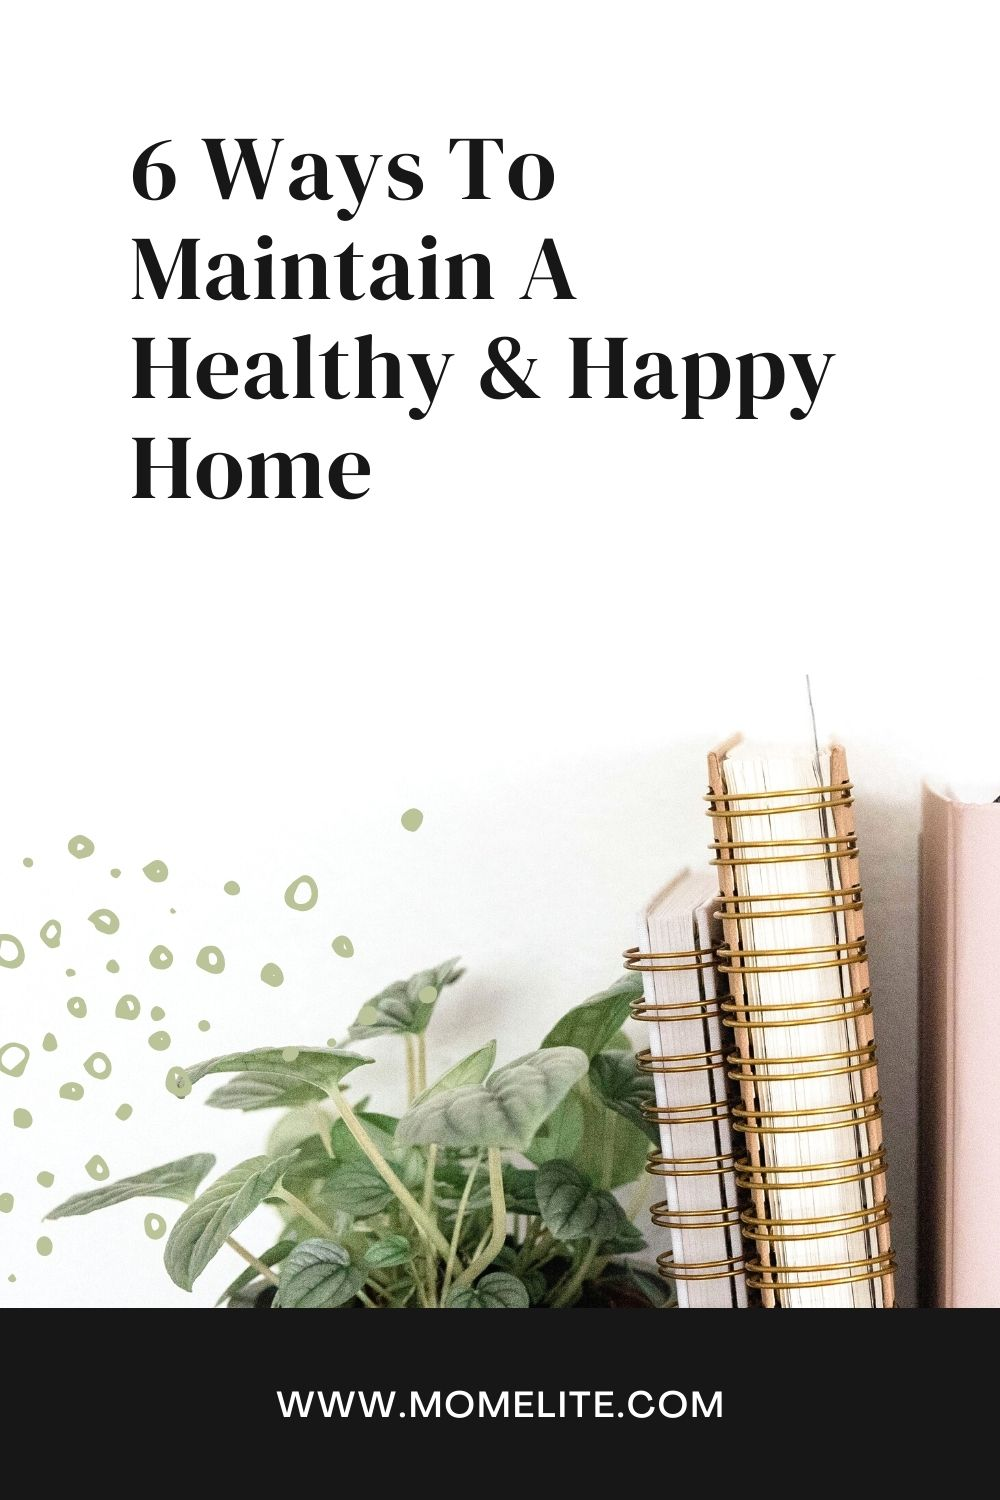 6 Ways To Maintain A Healthy & Happy Home